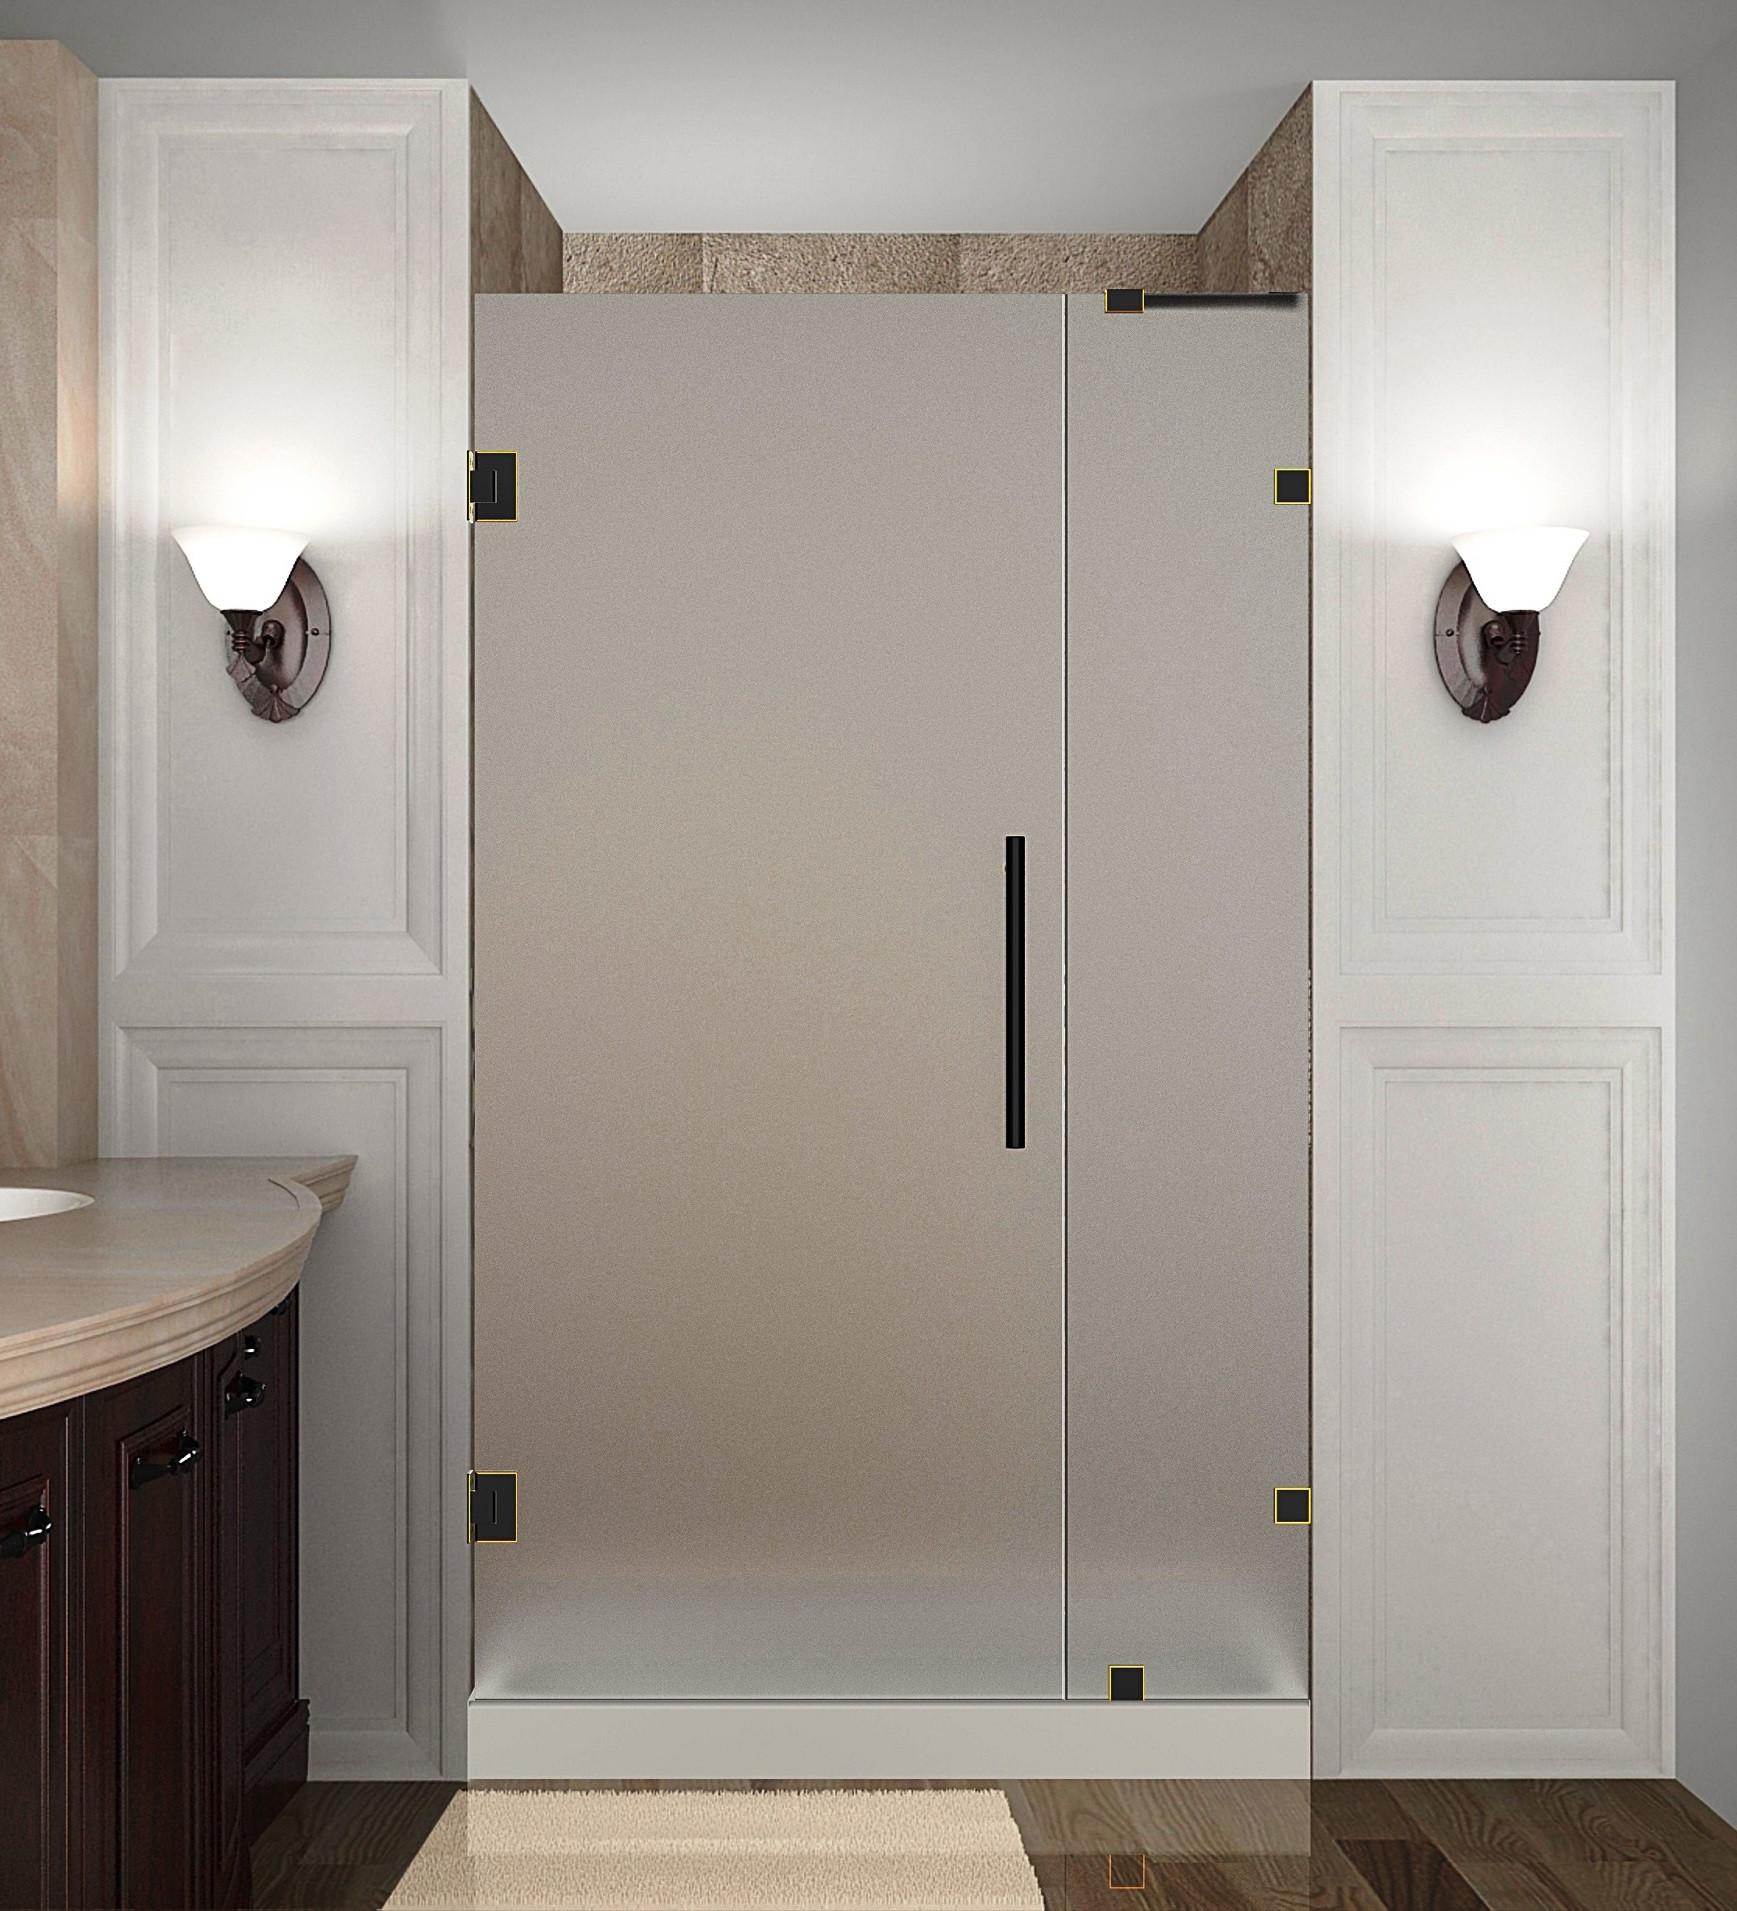 Aston Global SDR985F-ORB-33-10 Frameless Hinged Frosted Glass Shower Door In Oil Rubbed Bronze